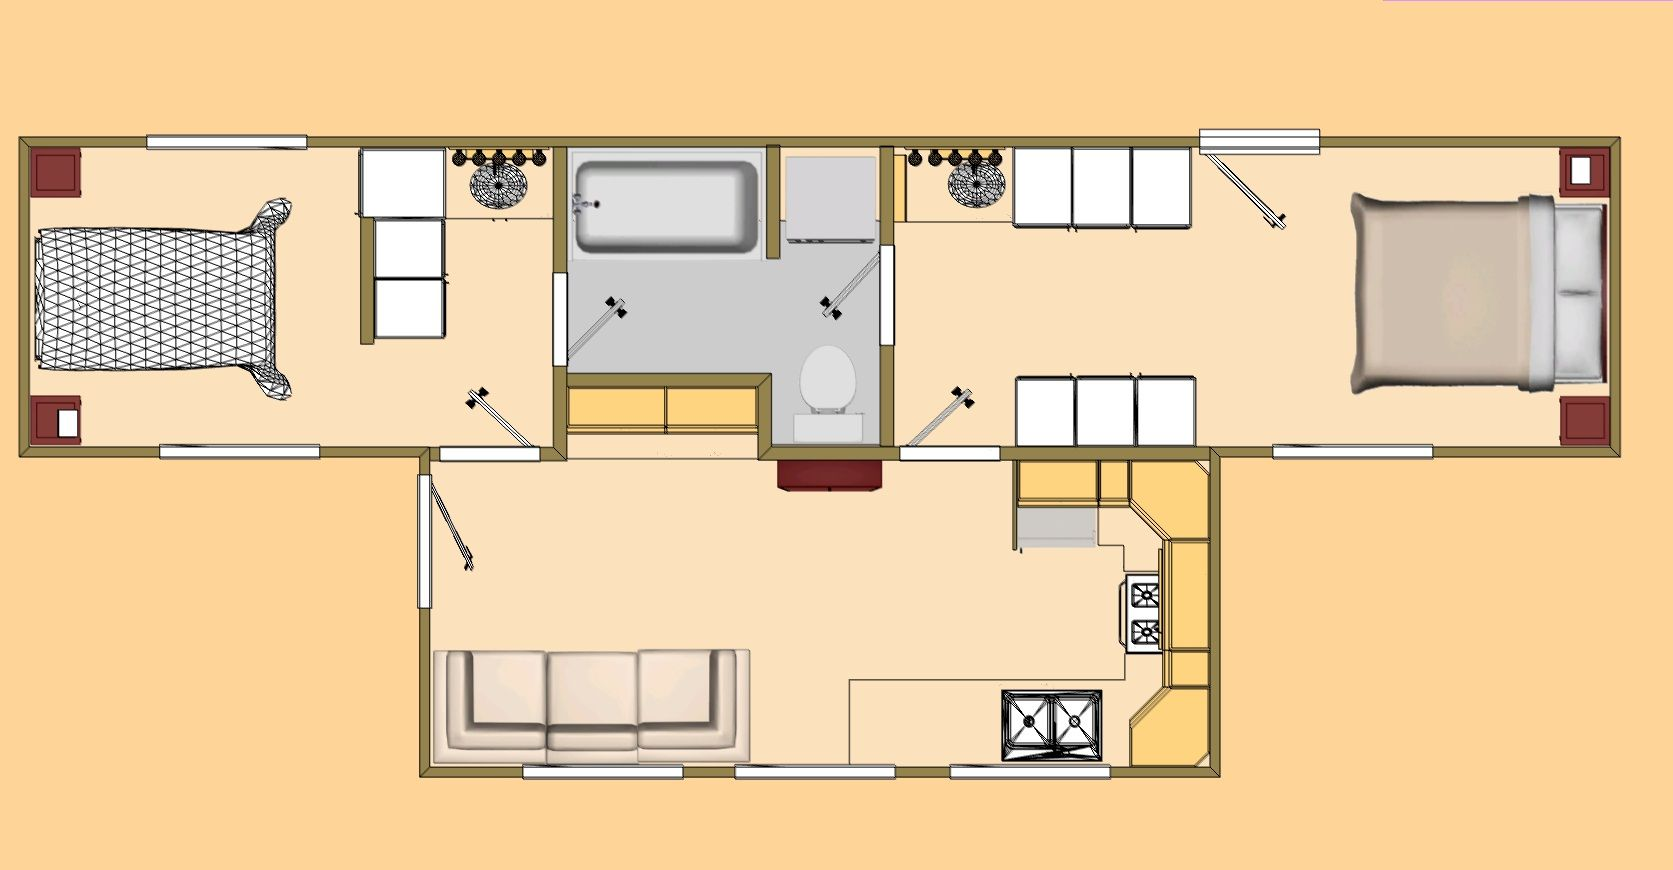 Container home floor plans com 480 sq ft shipping container floor plan big t floor plan - Container home plans for sale ...